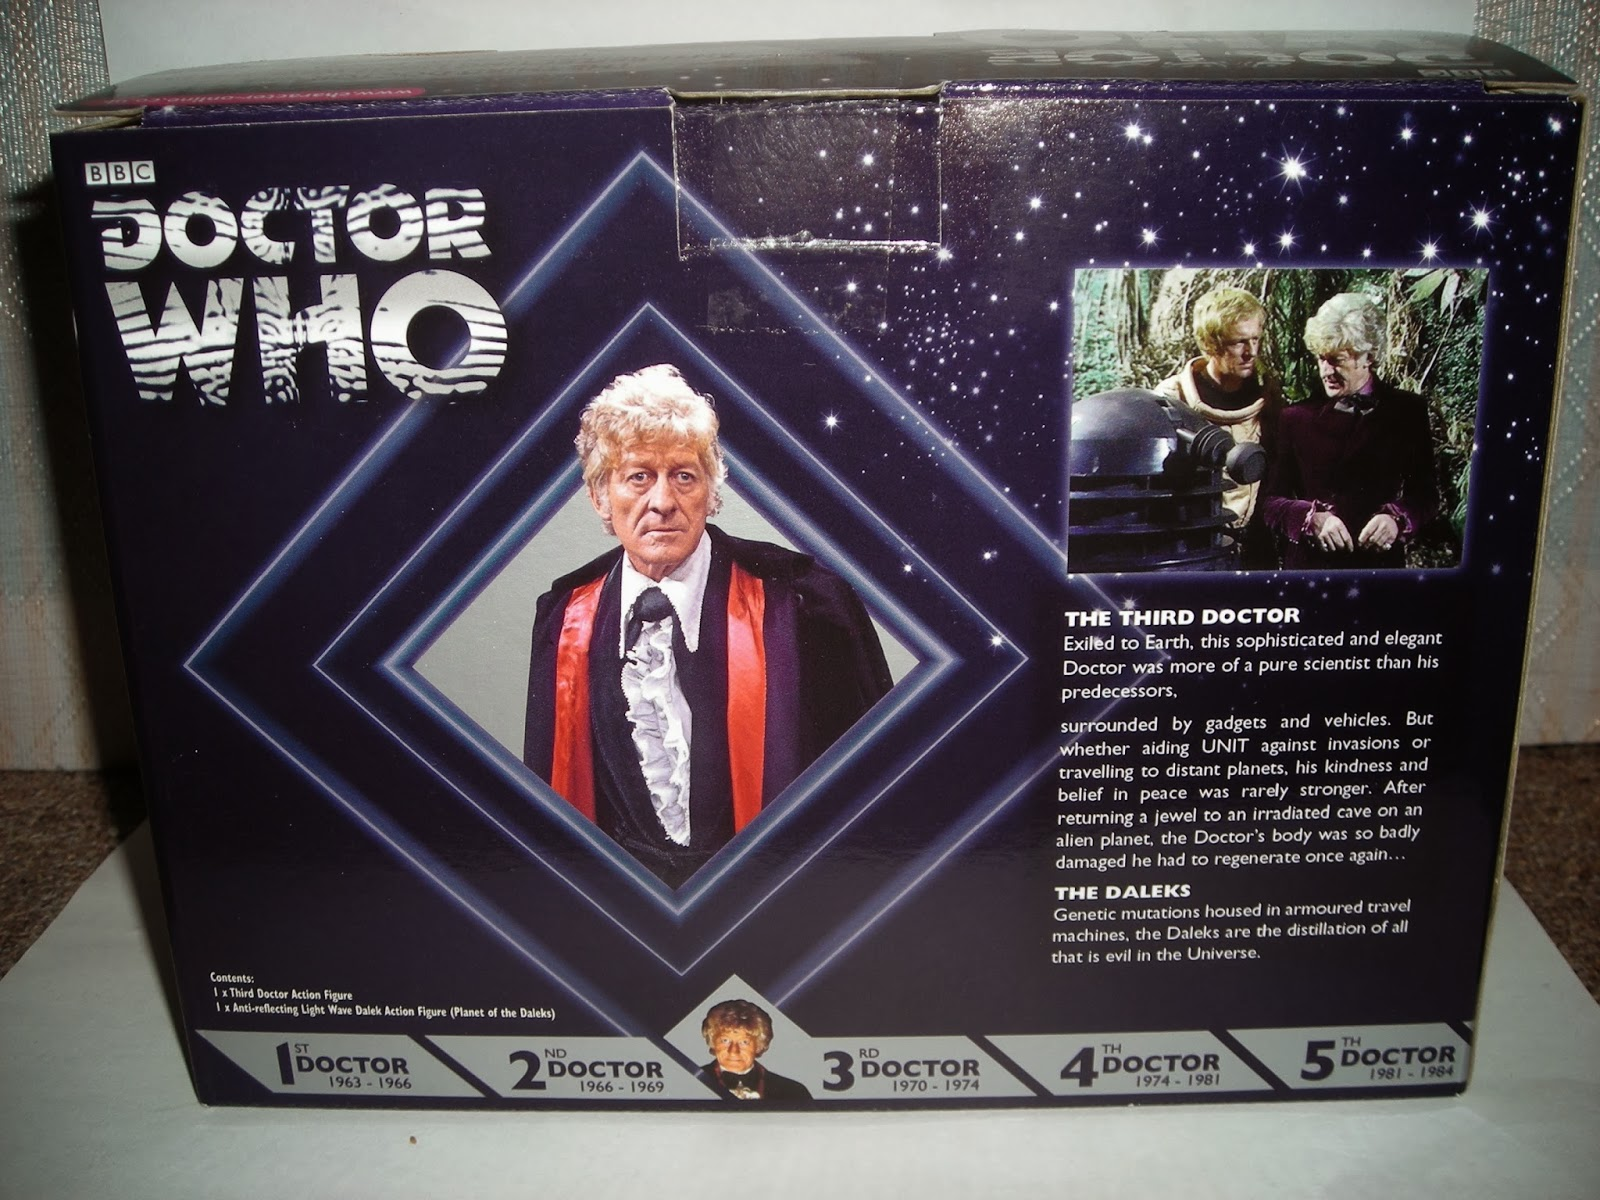 Jon Pertwee - what a guy